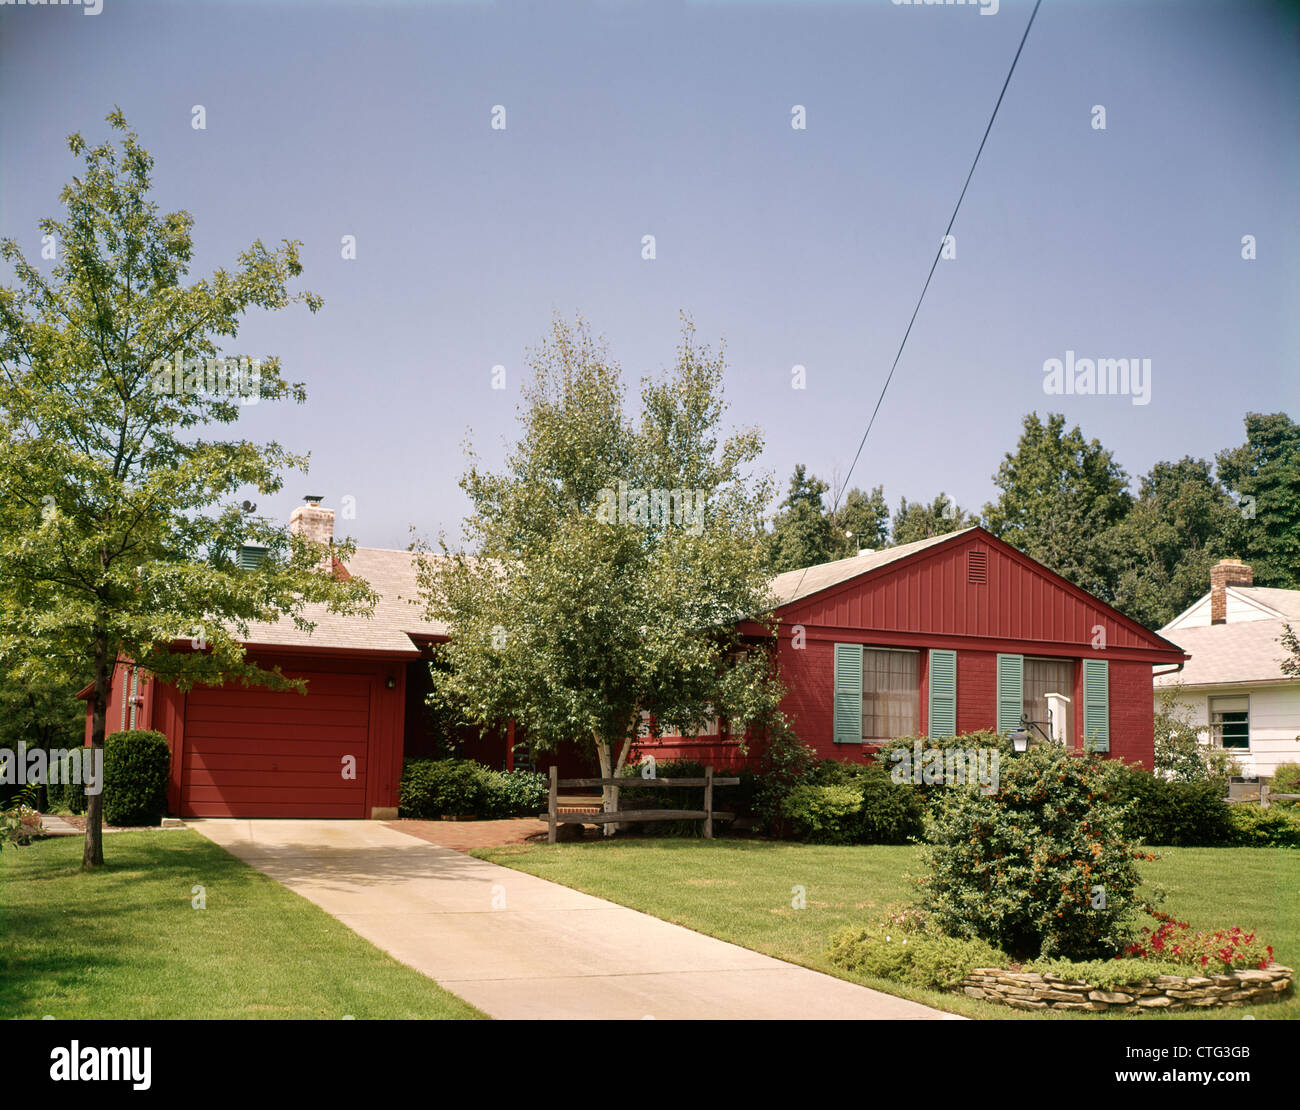 1960s RED RANCH STYLE SUBURBAN HOME HOUSE DRIVEWAY SINGLE CAR GARAGE